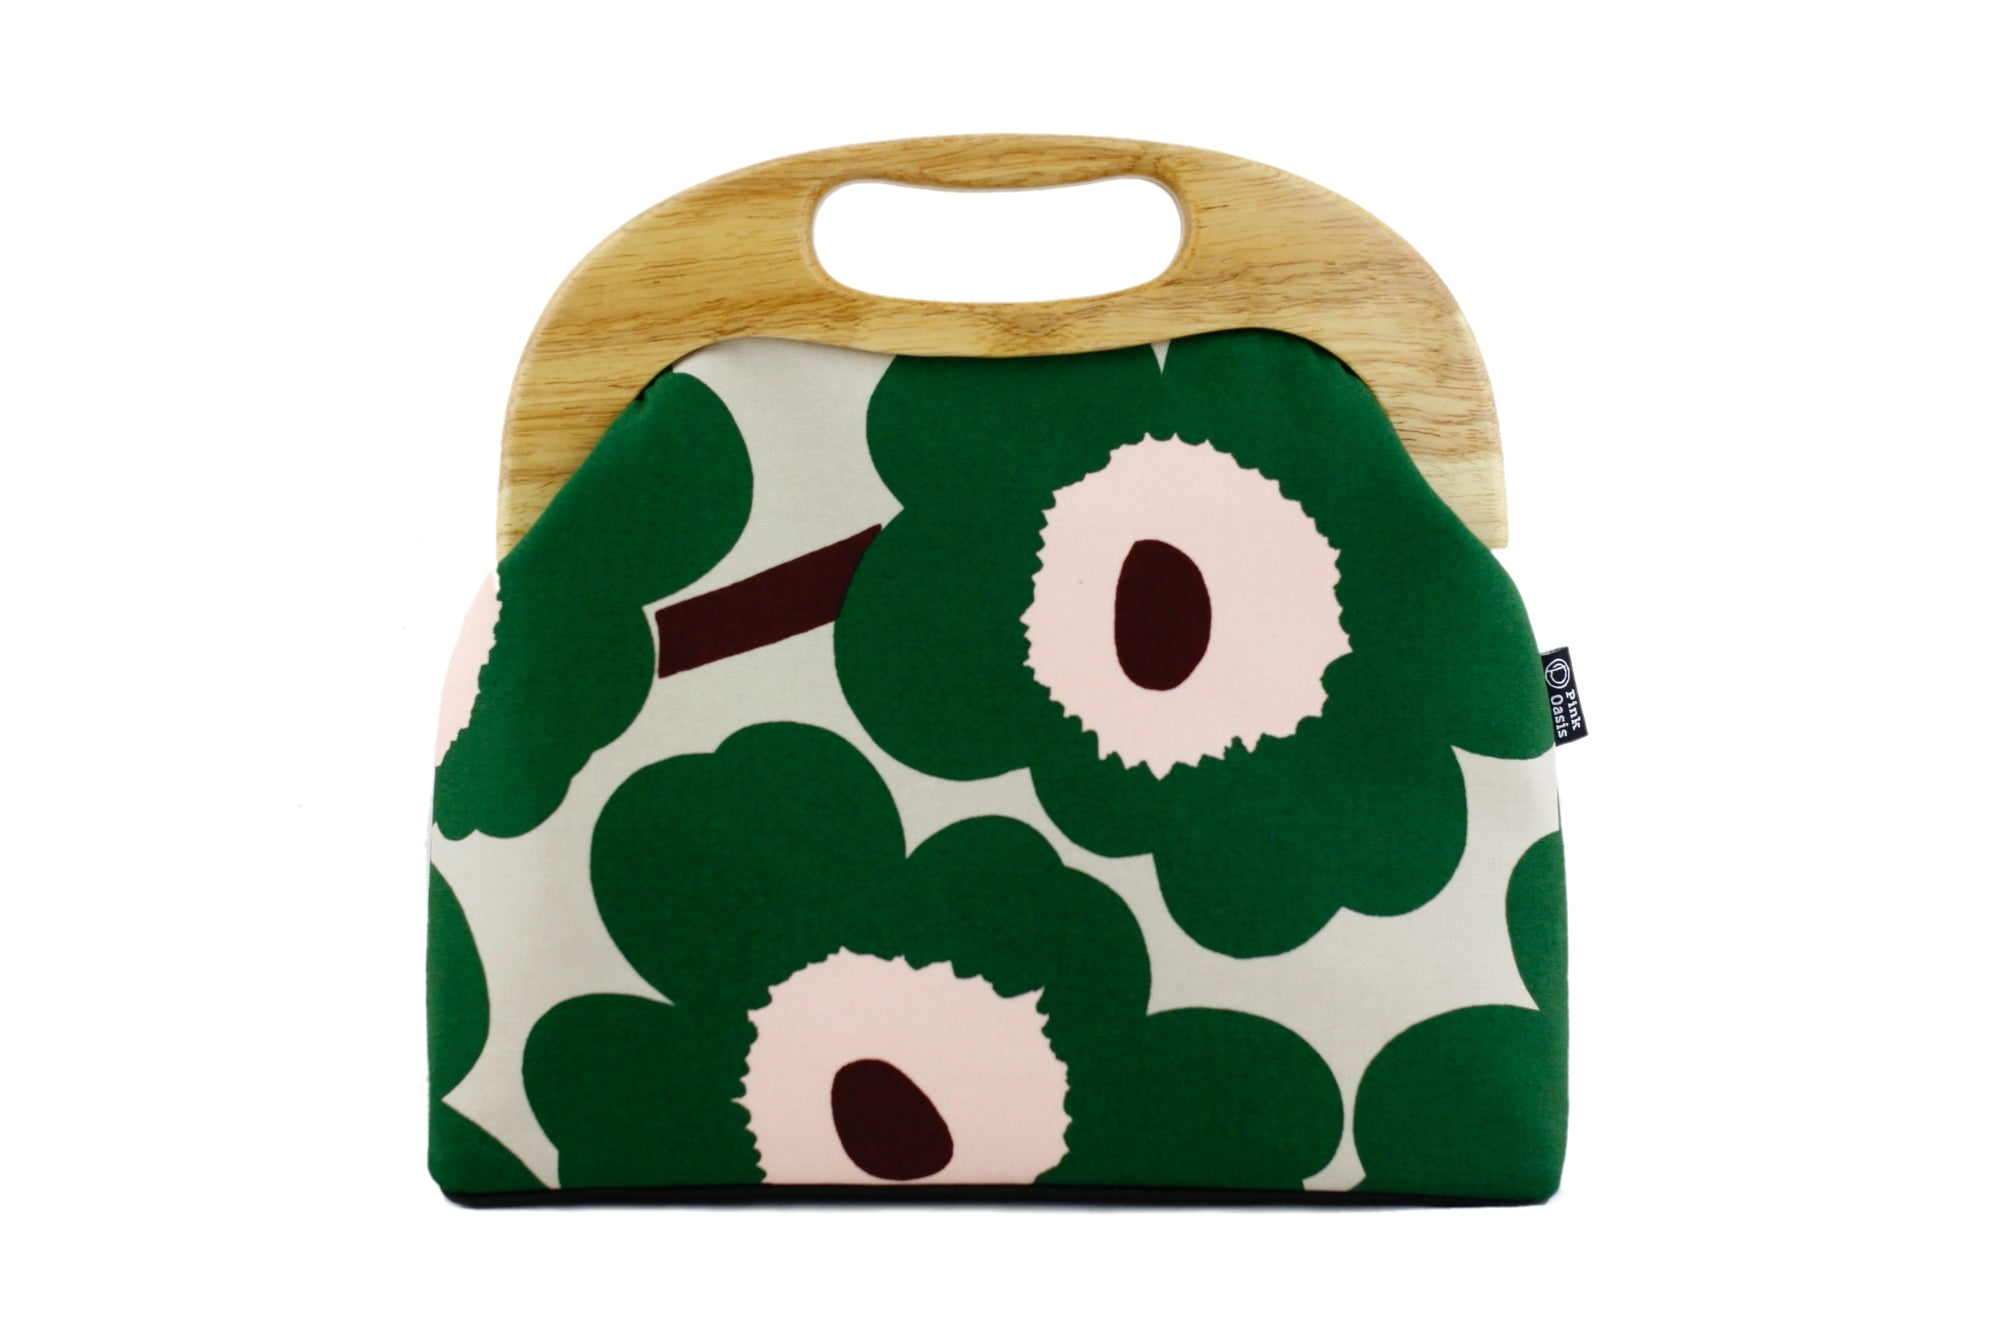 Marimekko Unikko Poppy Green Handbag with Leather Strap | PINKOASIS